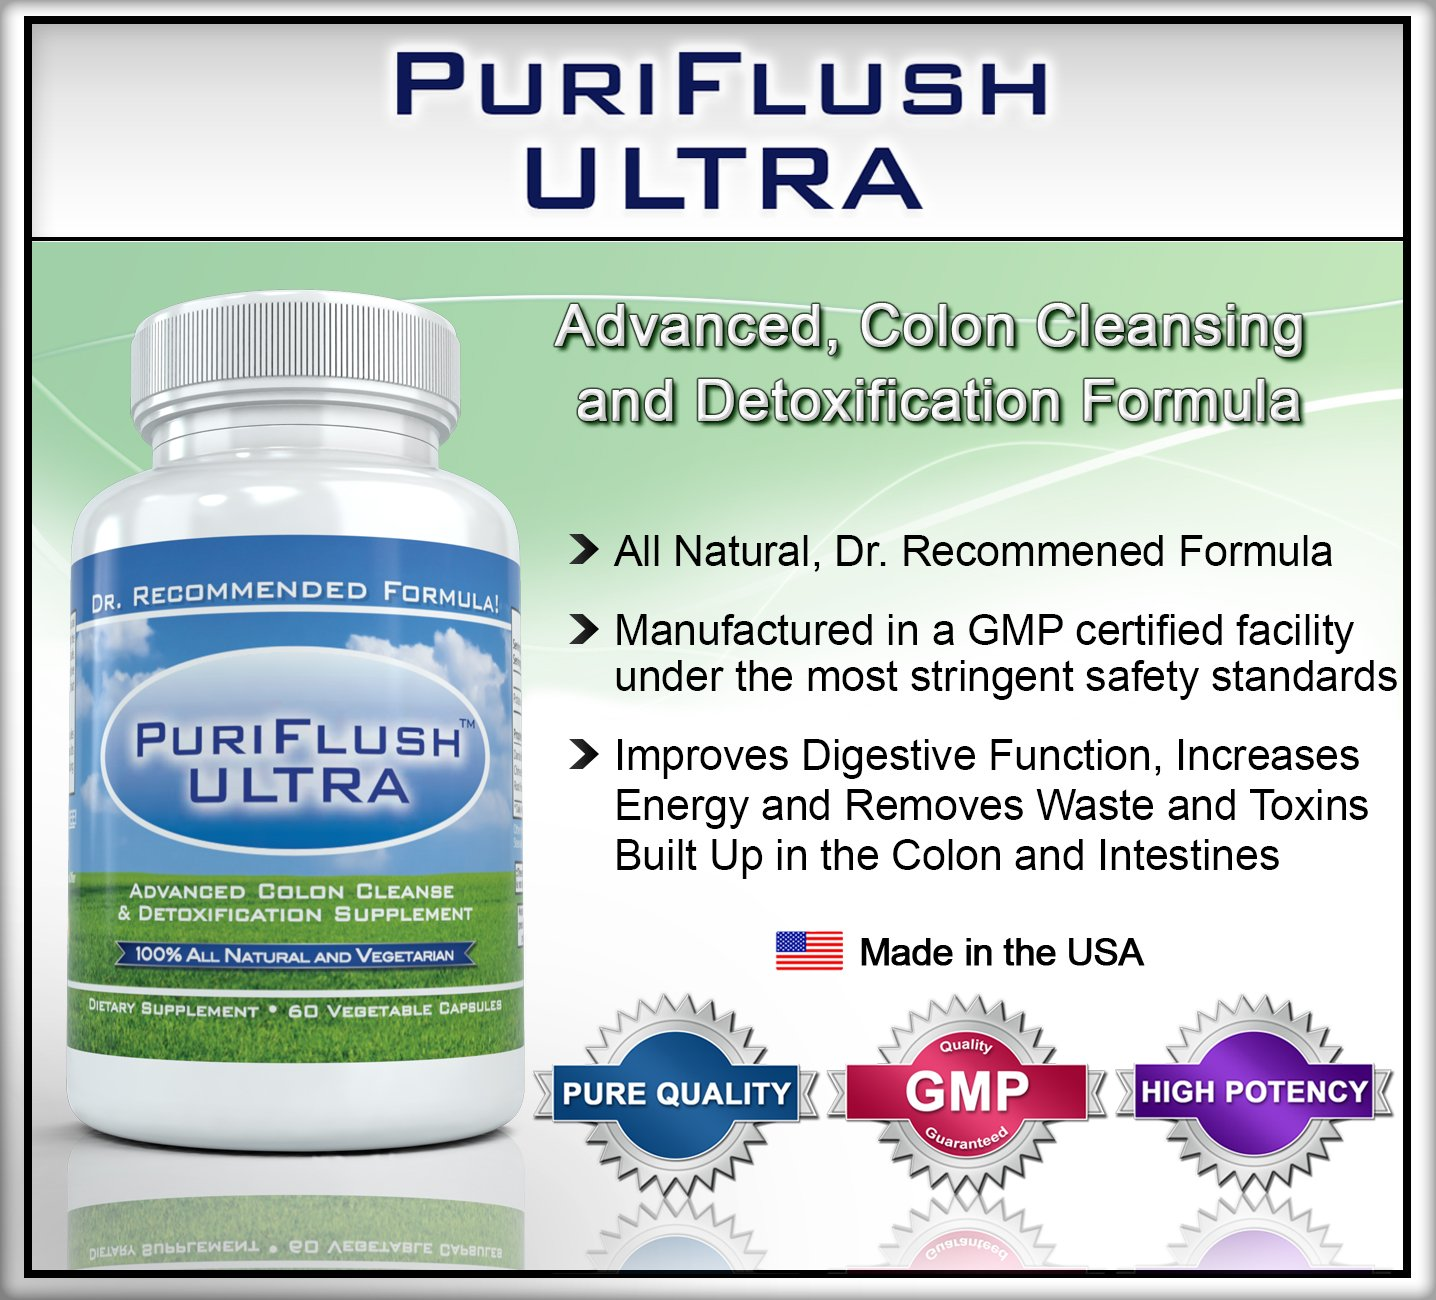 PURIFLUSH ULTRA The All Natural Complete Colon Cleansing